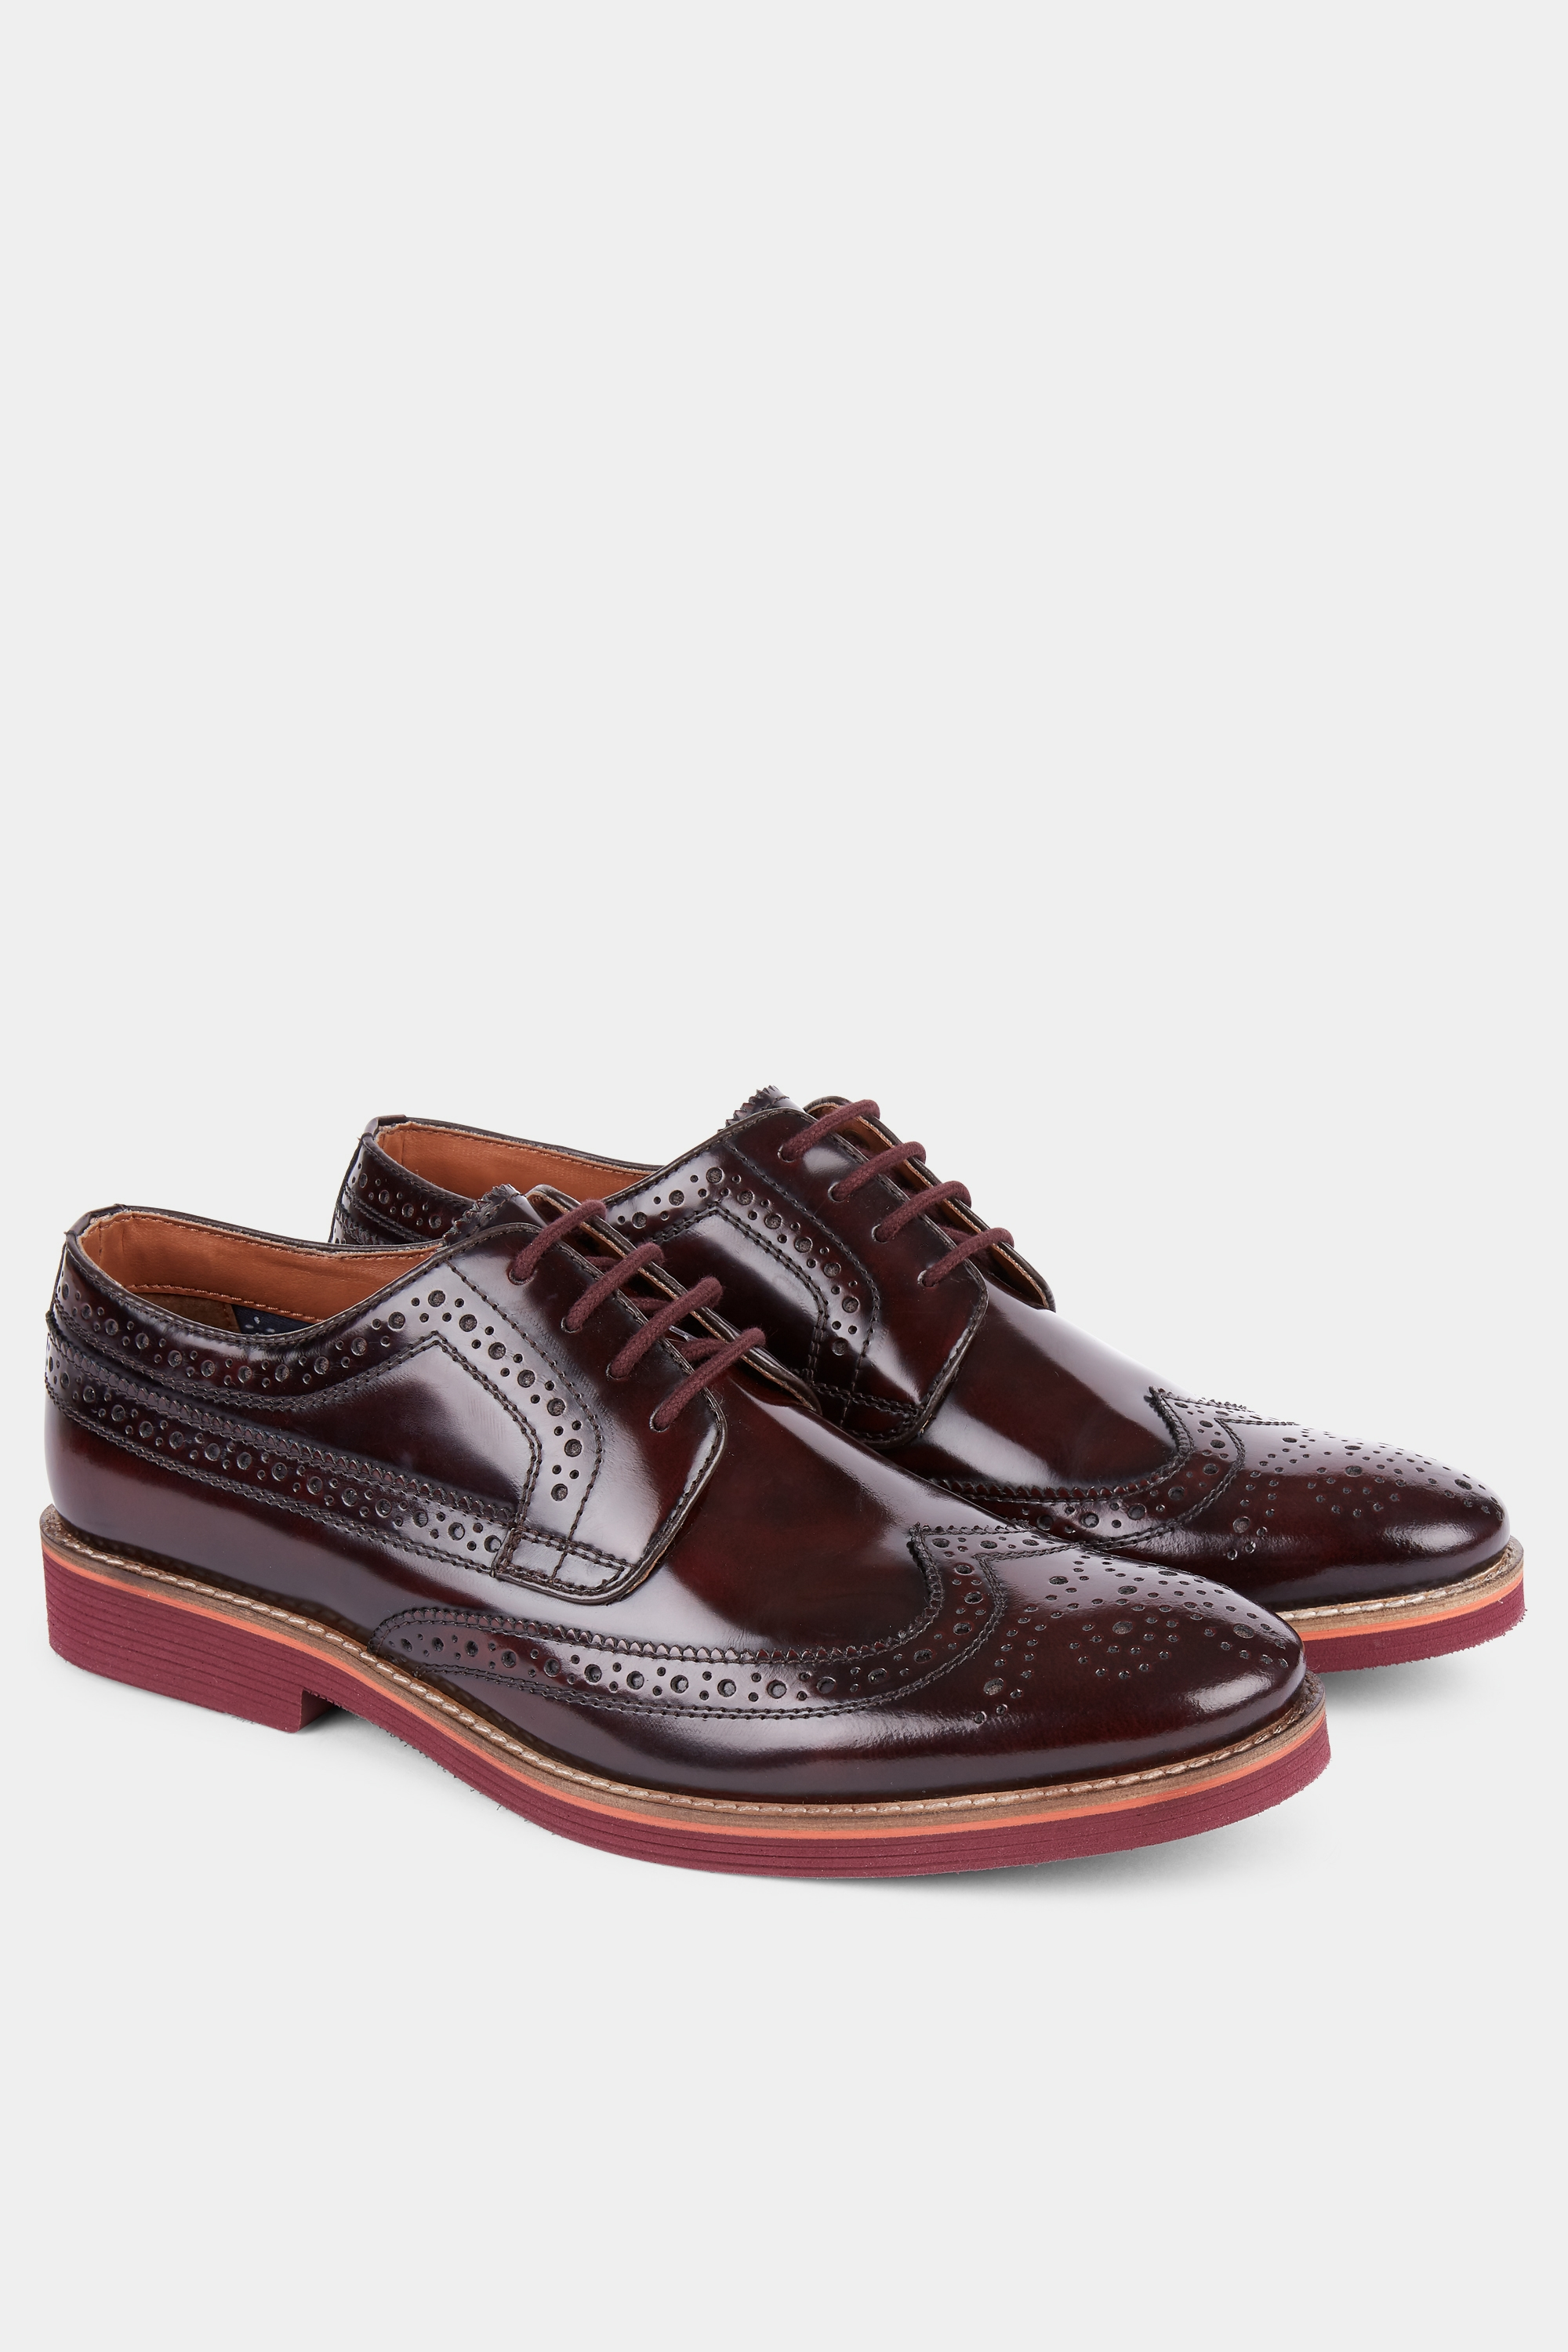 Moss Bros Moss London Foxley Burgundy Eva Sole Derby